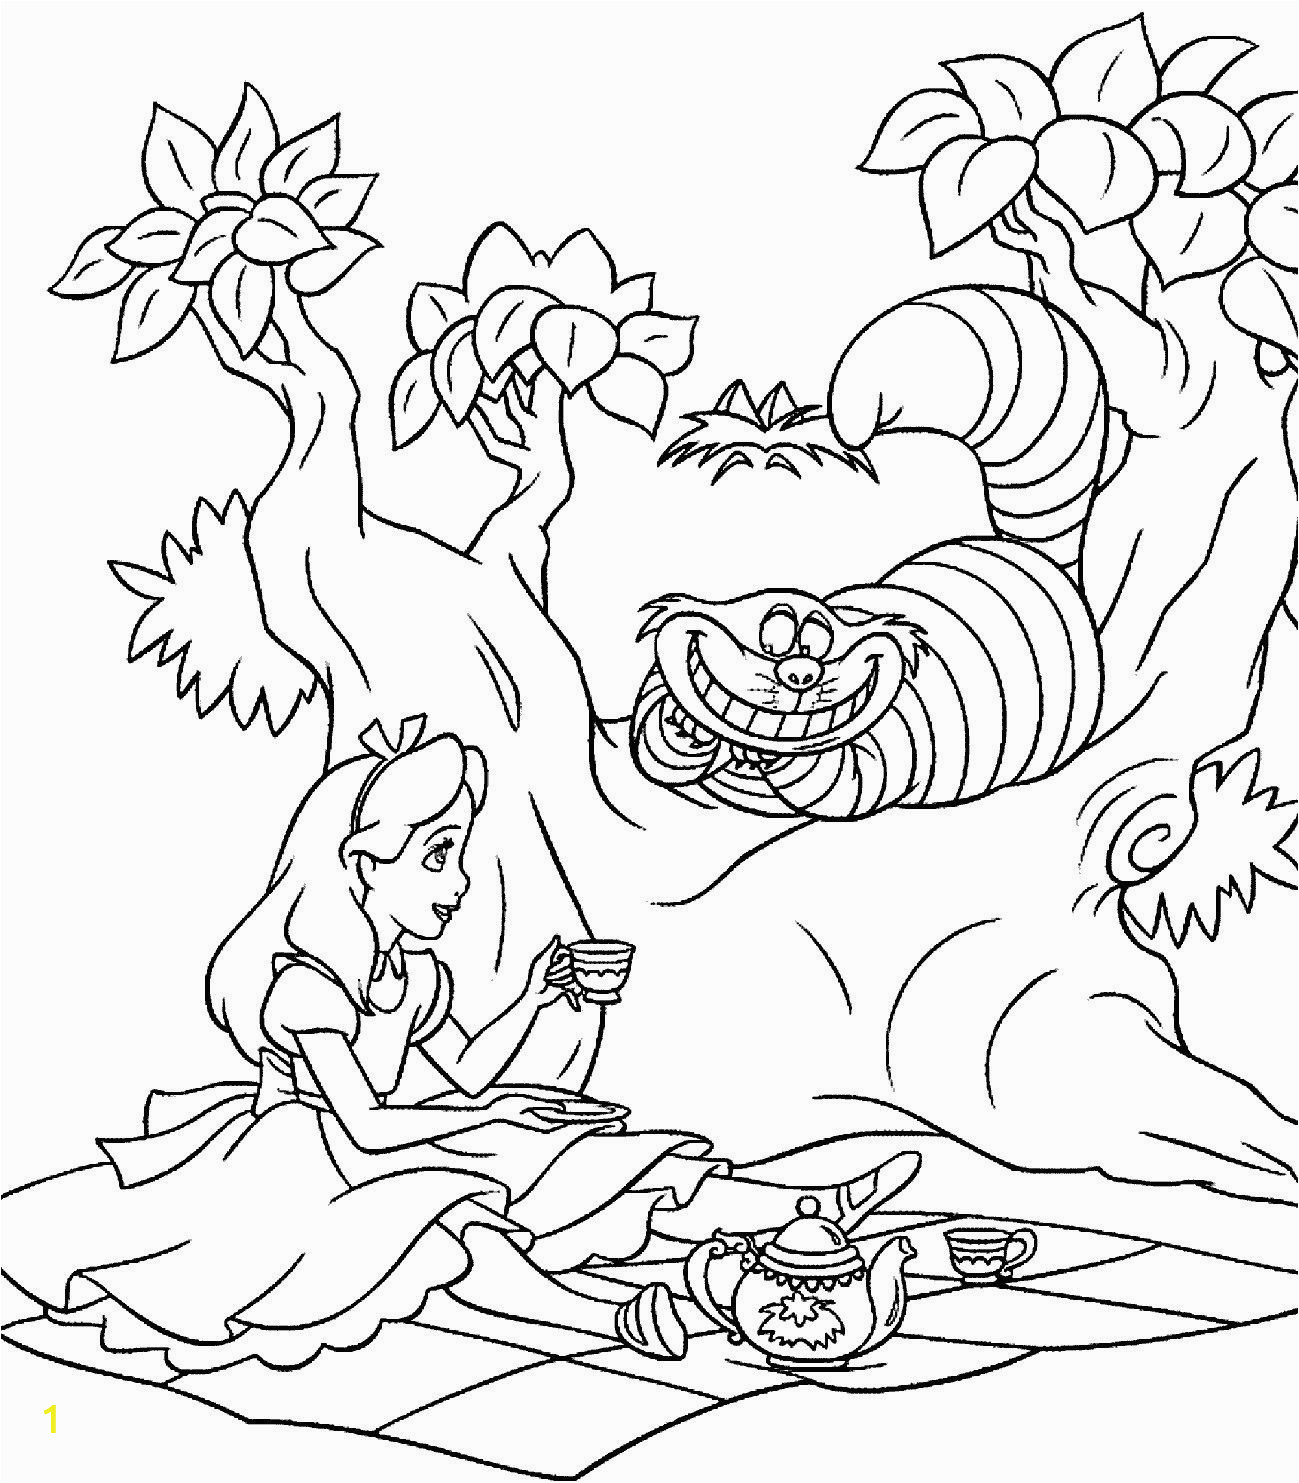 alice in wonderland coloring pages for adults new alice in wonderland coloring pages of alice in wonderland coloring pages for adults